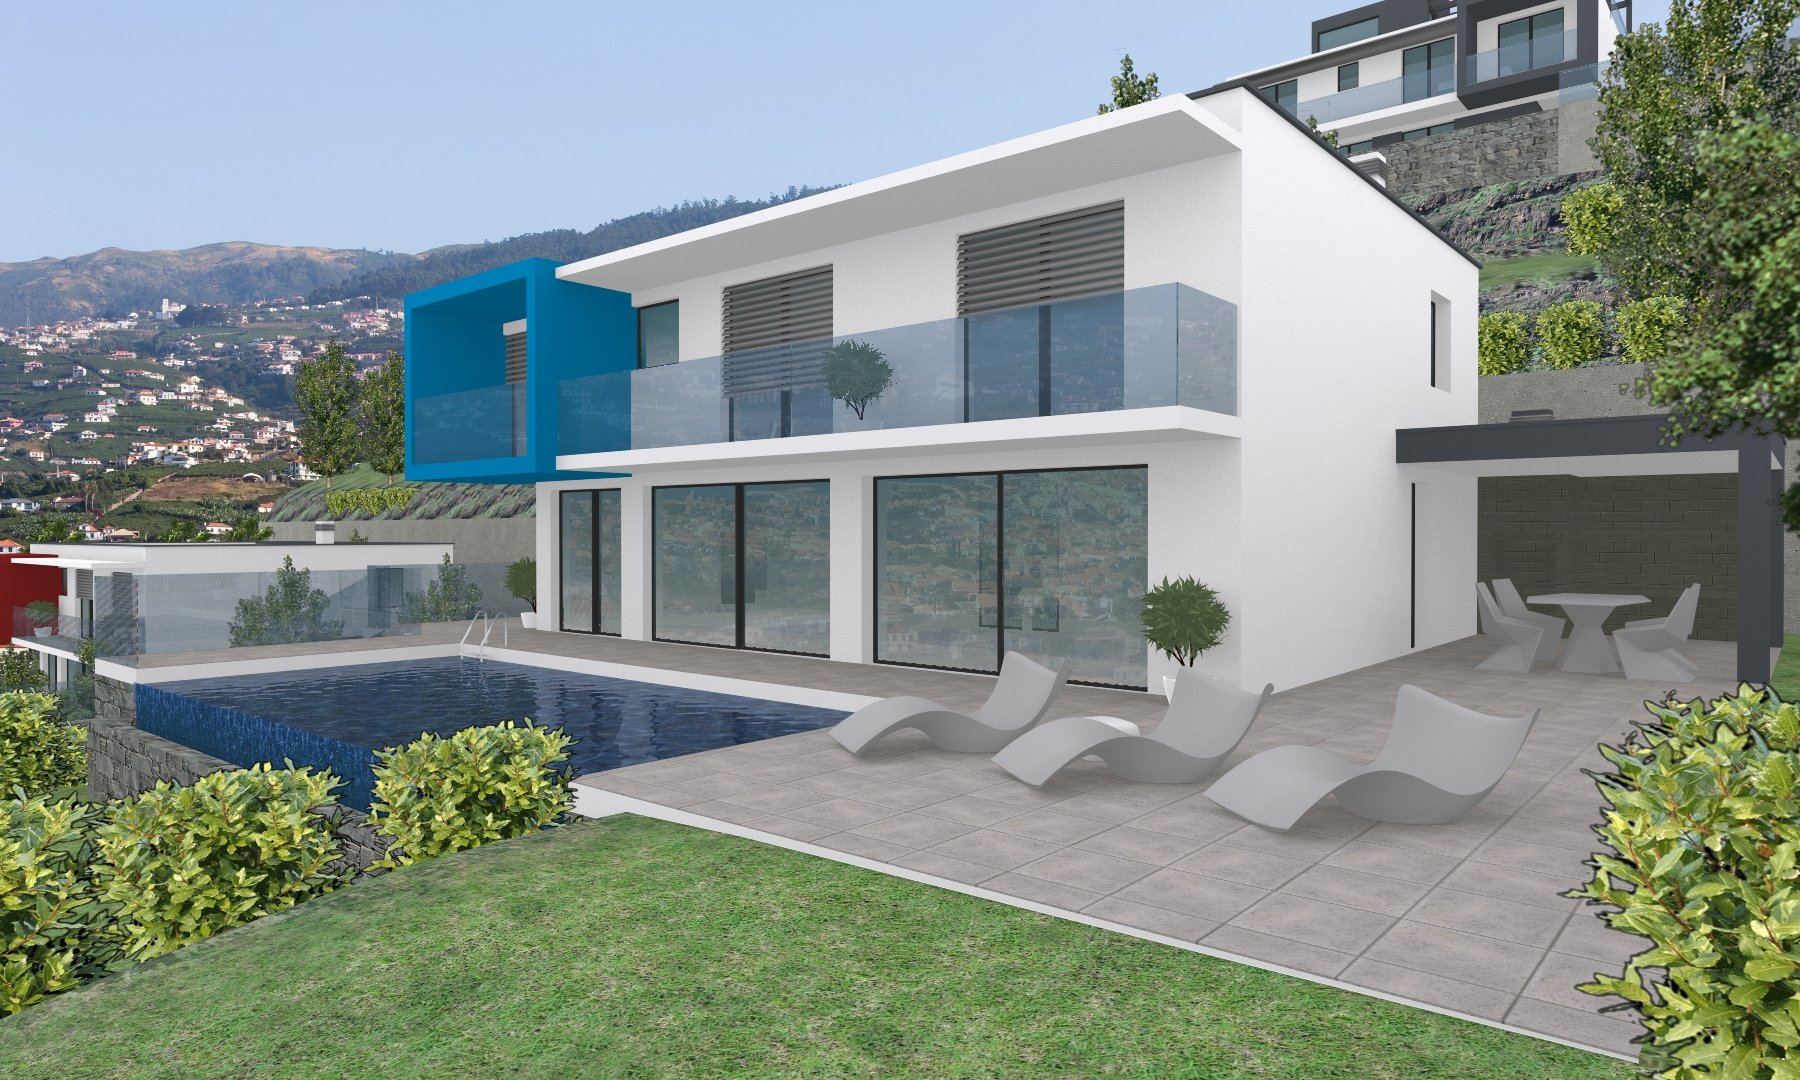 New contemporary house with pool and views of the bay of Funchal